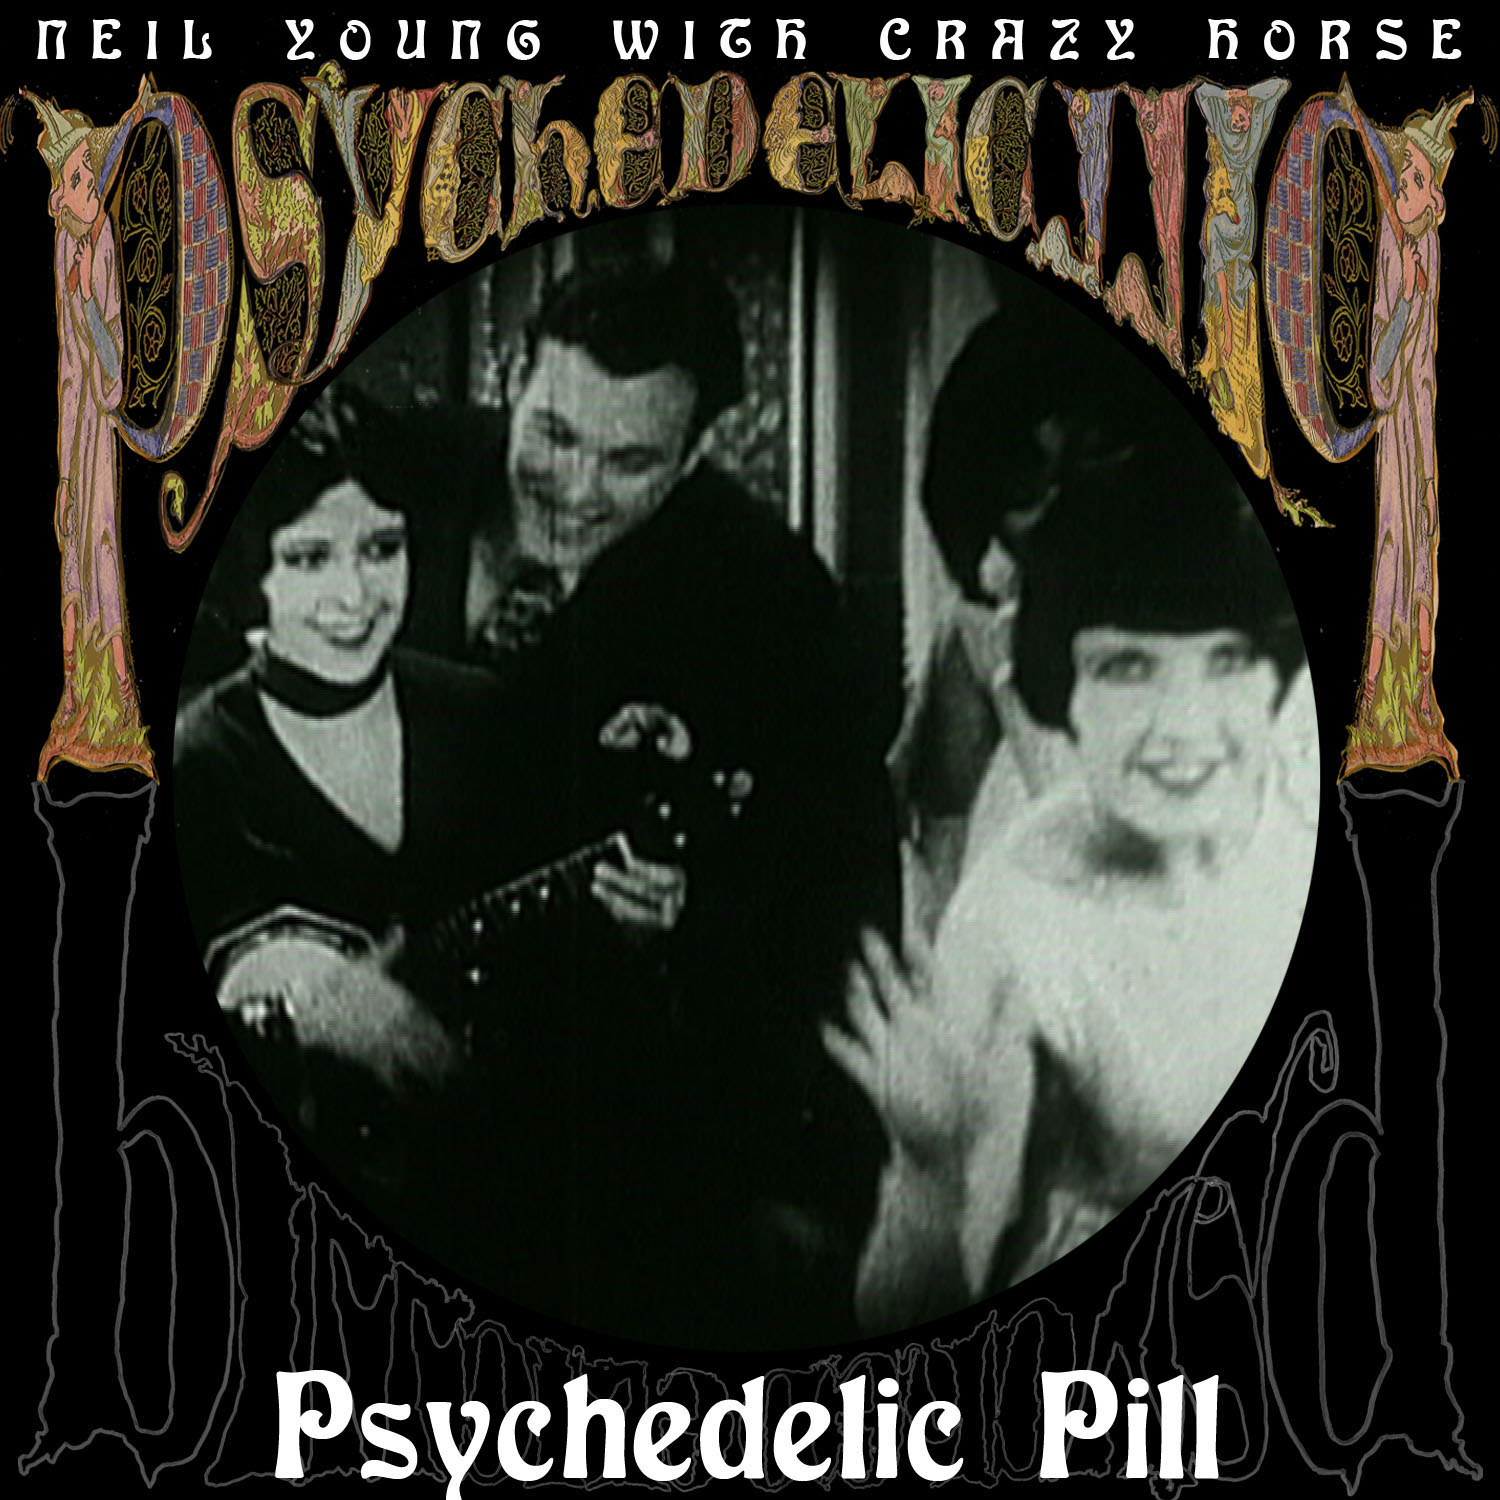 News Early Reaction Psychedelic Pill By Neil Young Crazy Horse